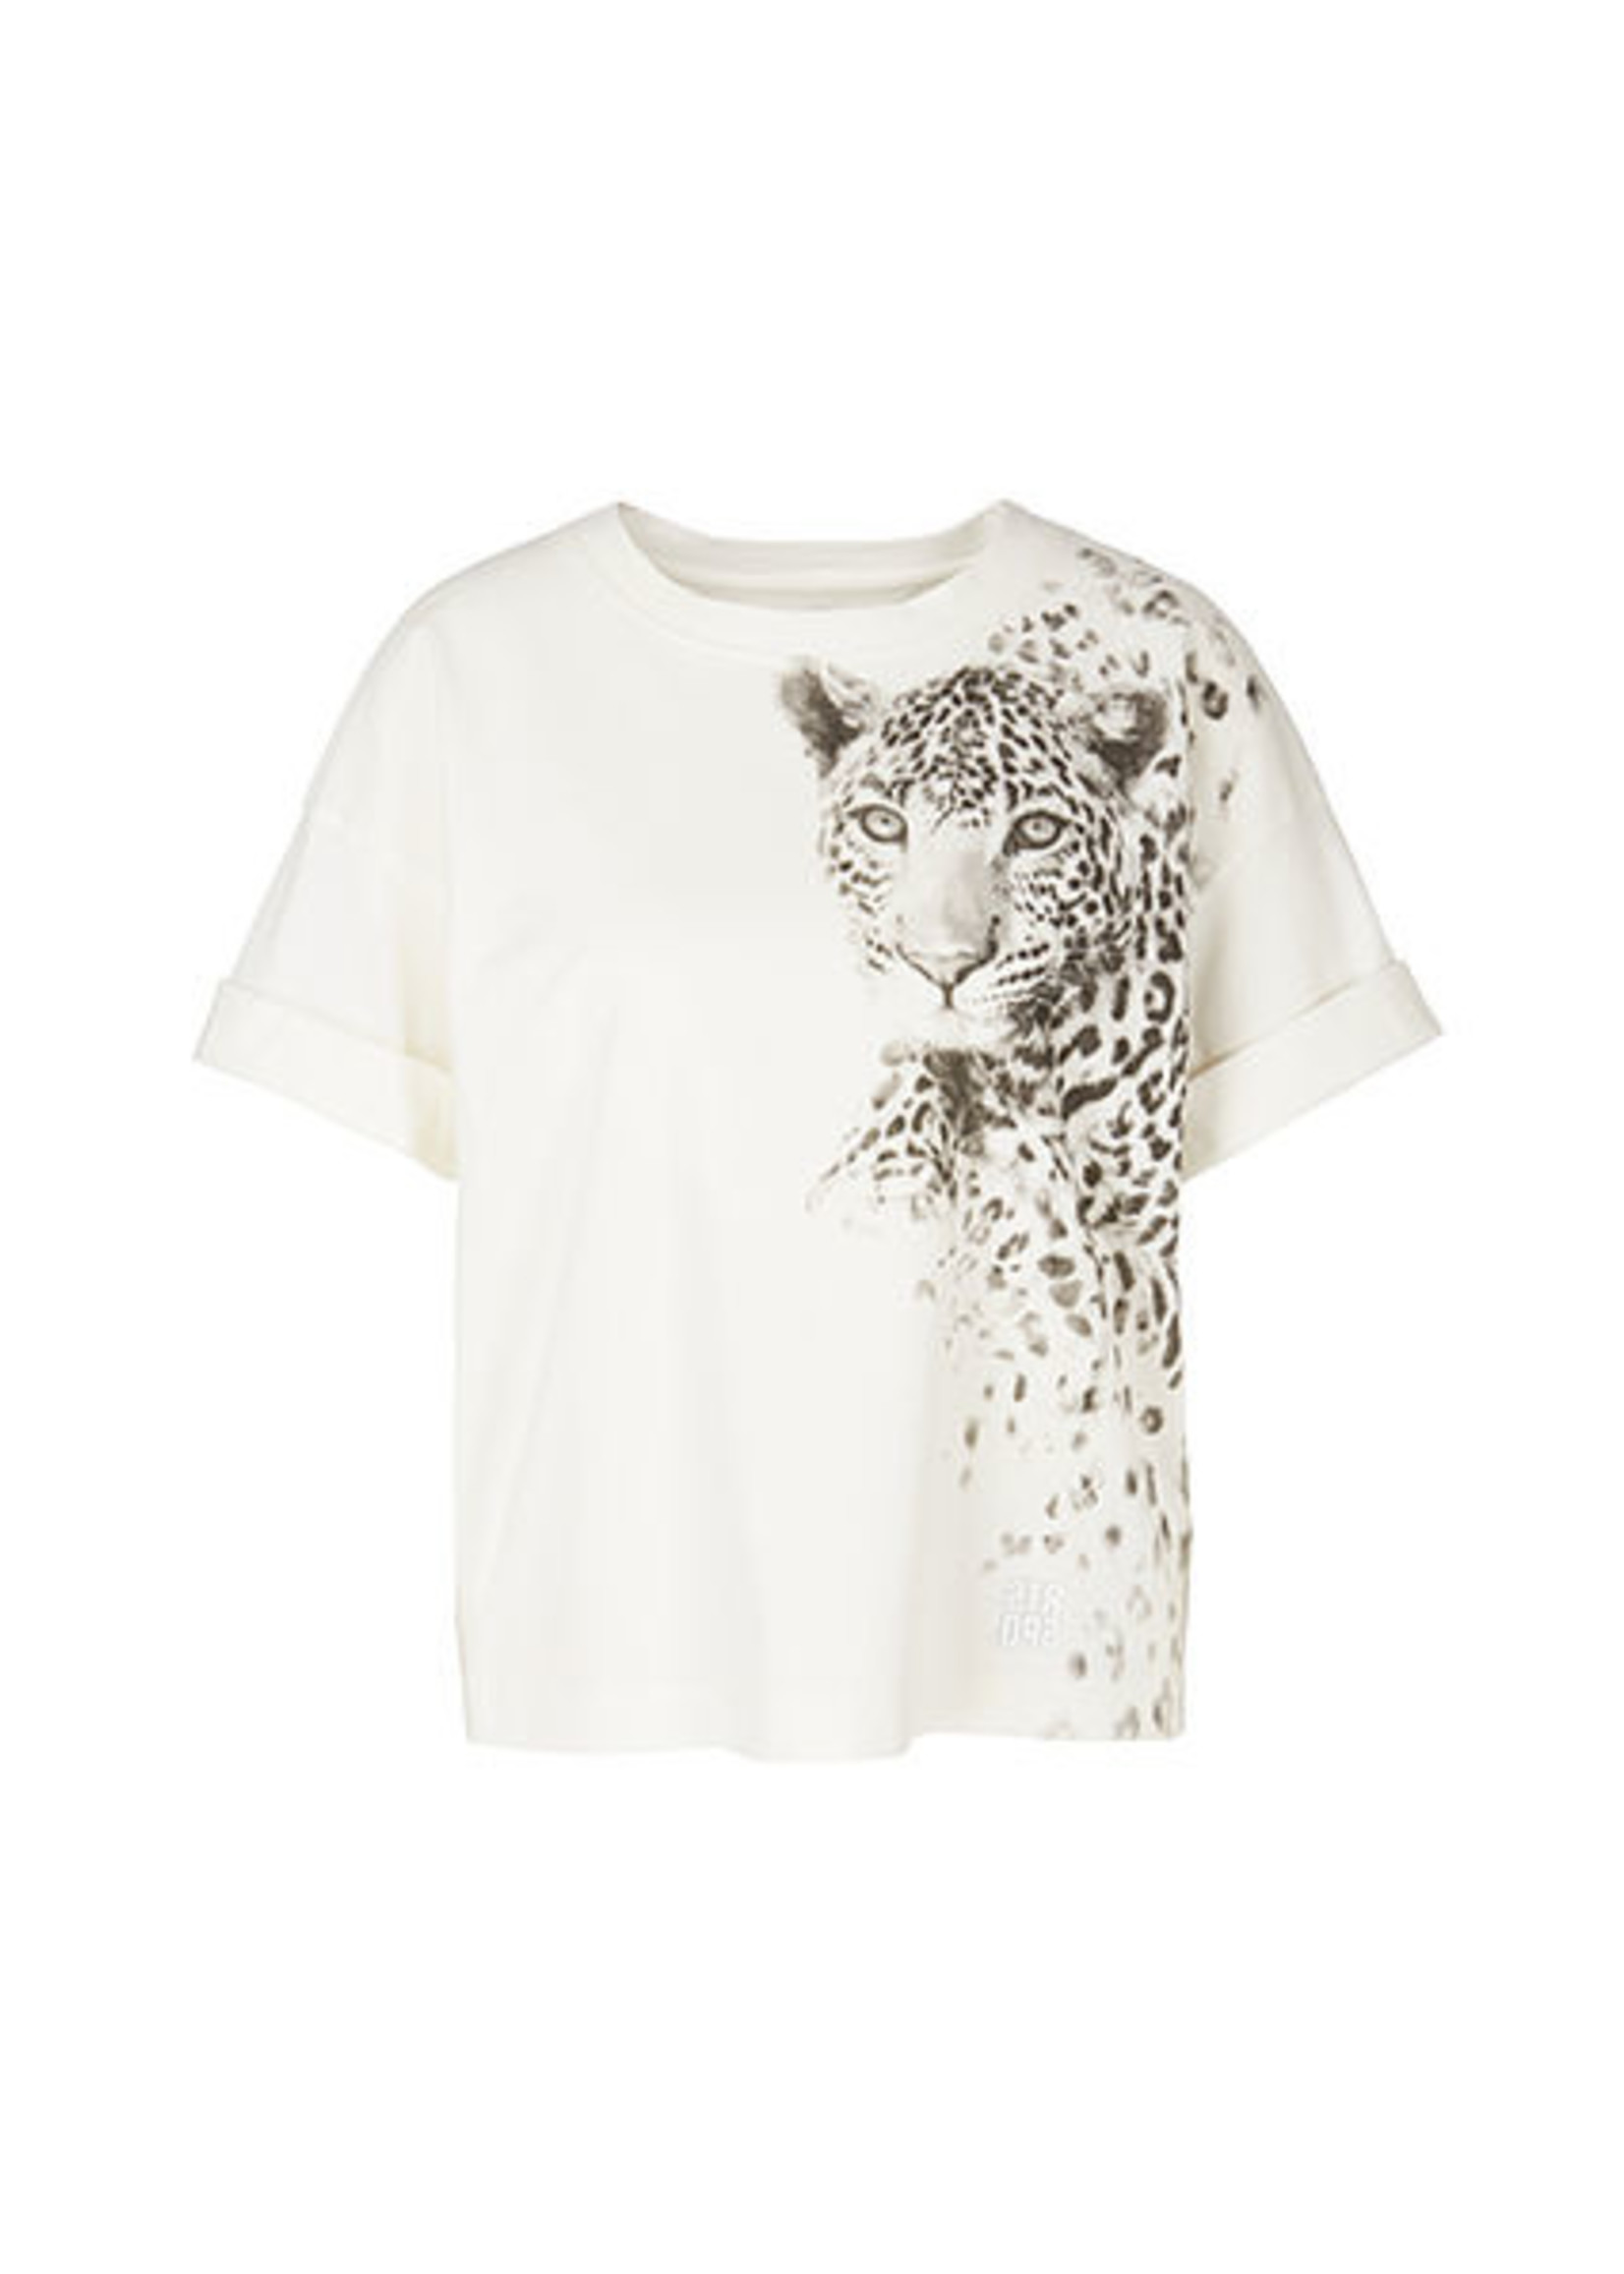 Marccain Sports T-shirt RS 48.01 J87 off-white